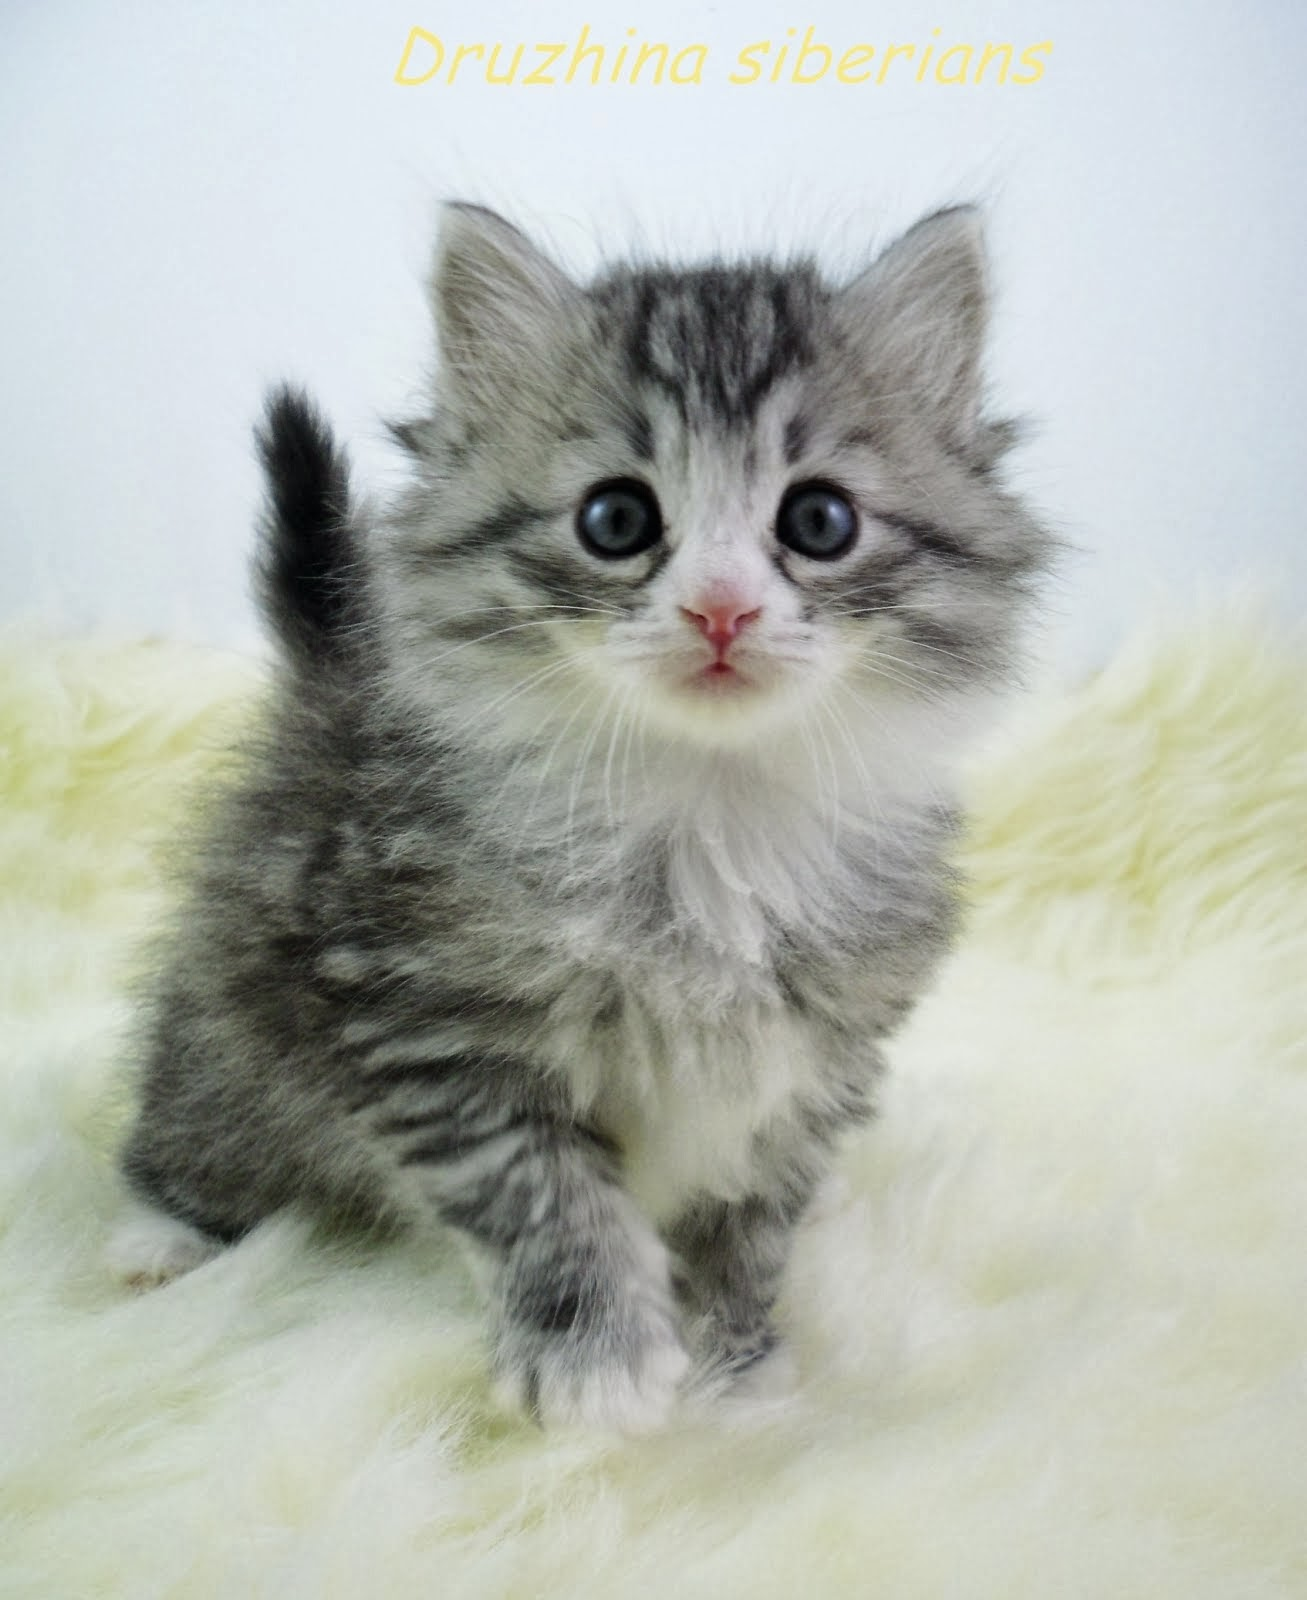 Dark silver tabby with white